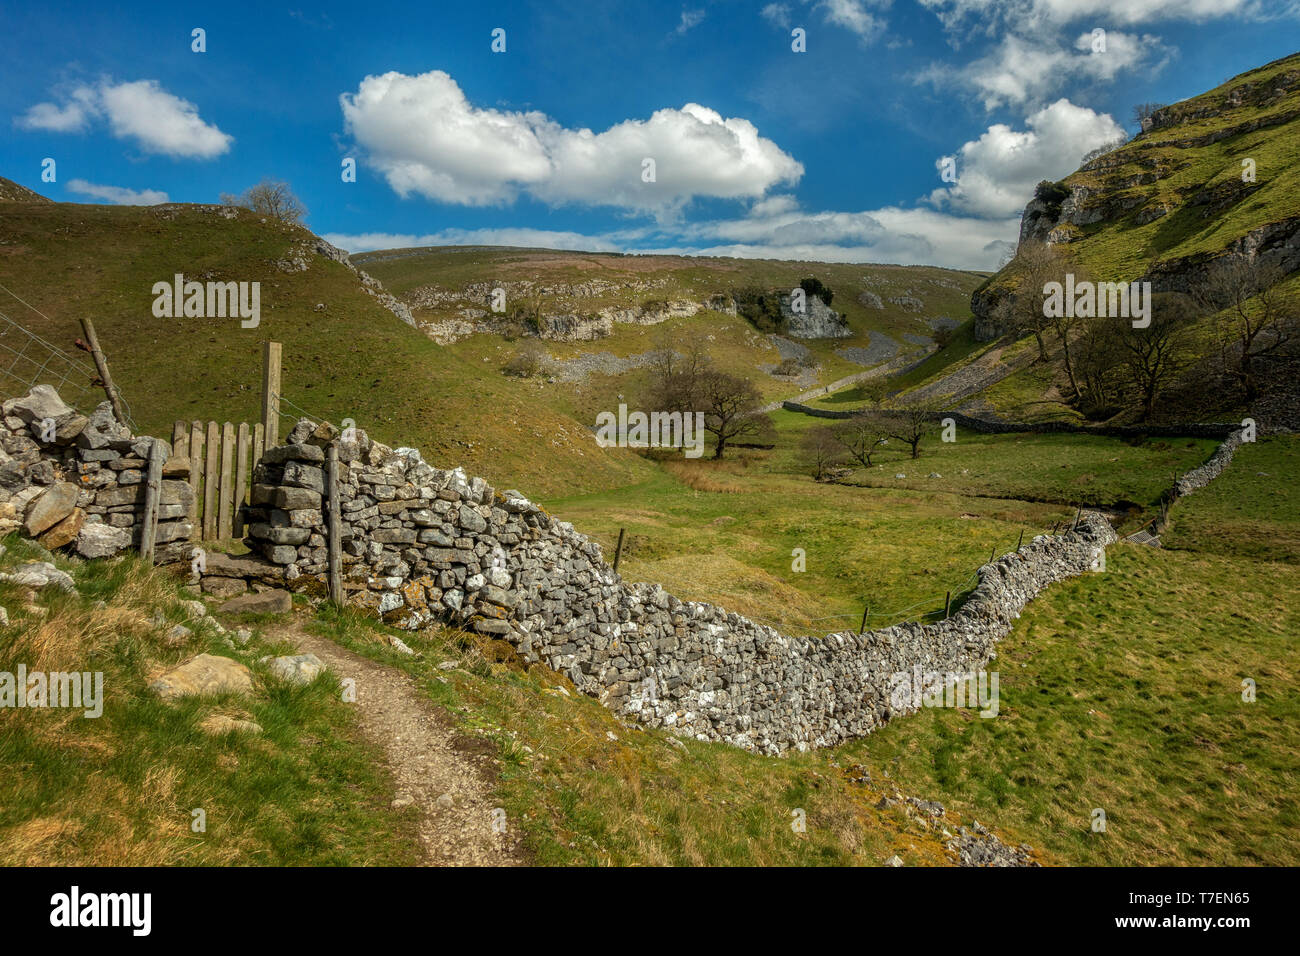 Views over a limestone wall and stile into Trollerdale from the path to Troller's Gill near Appletreewick, Yorkshire Dales Stock Photo